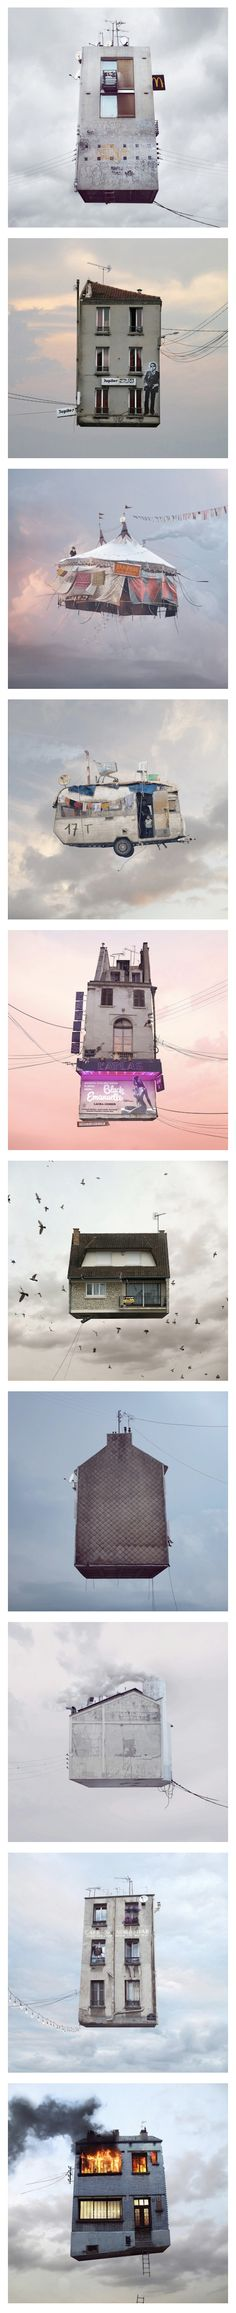 "Paris-based art director-turn-photographer Laurent Chéhère has created a series of whimsical photographs featuring buildings that appear to be flying.  Inspired by ""Le Ballon Rouge""—a 1956 French children's short film—the part-analog and part-digital images are rendered in the same muted post-war color palette as the film."